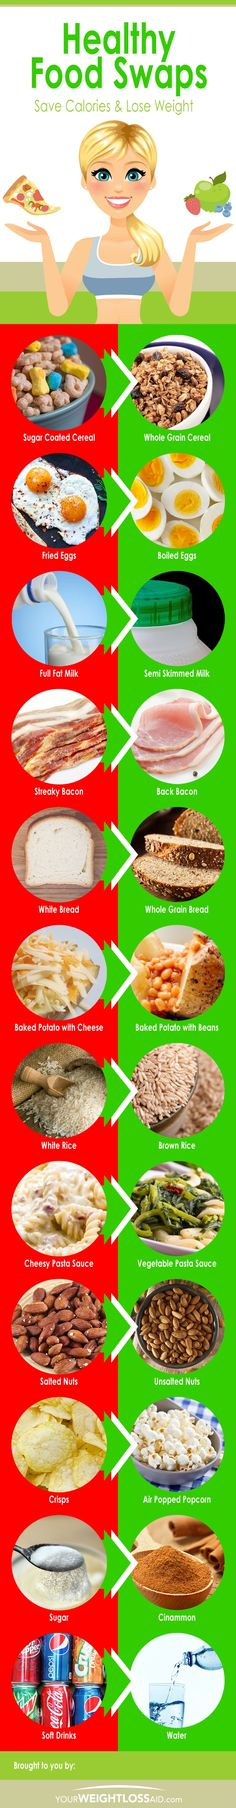 You can save vital calories by using some of these healthy food swaps, which will help you achieve your weight loss goals.